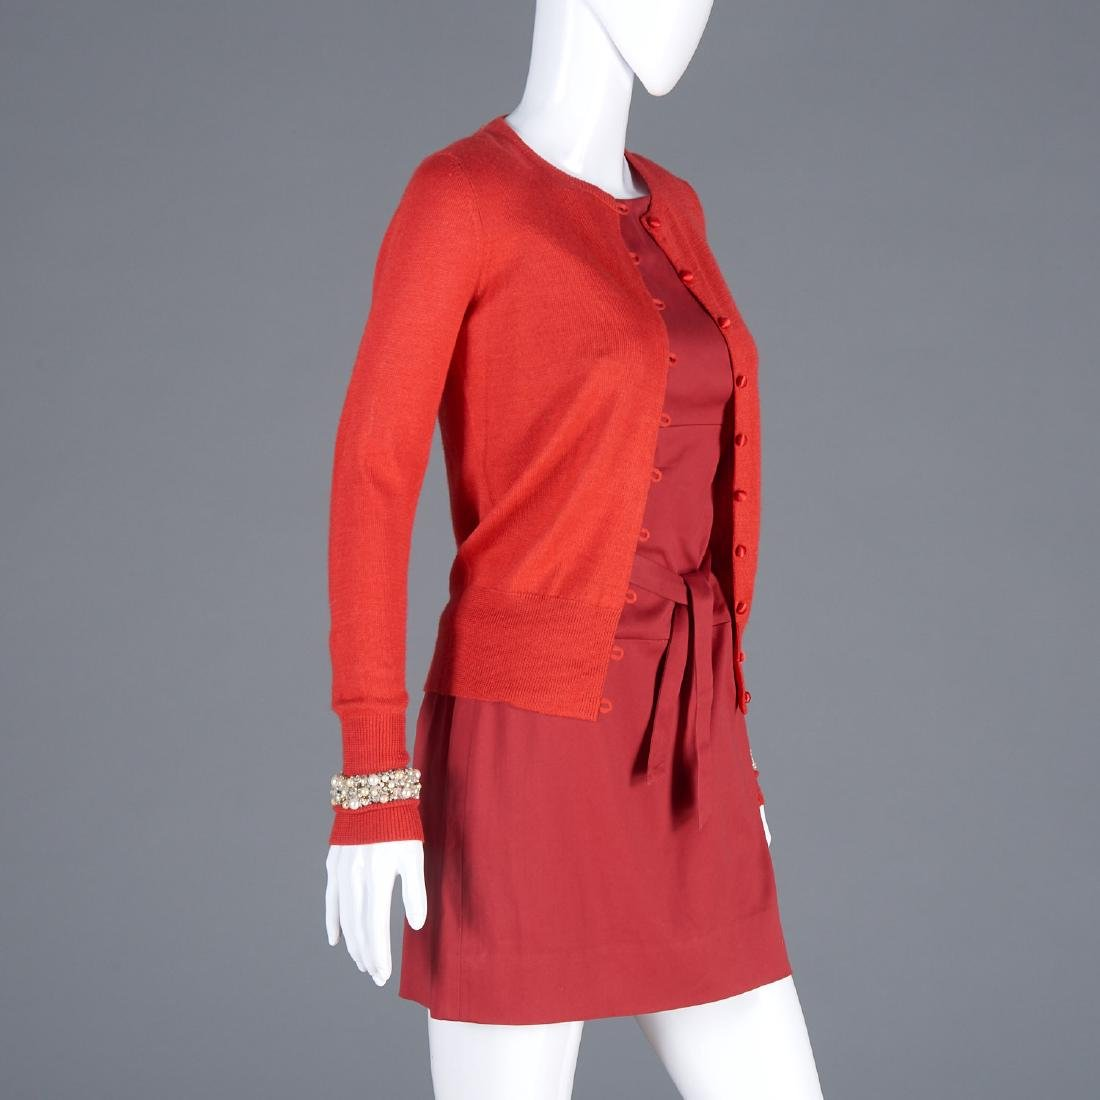 Tuleh cotton dress and cashmere blend cardigan